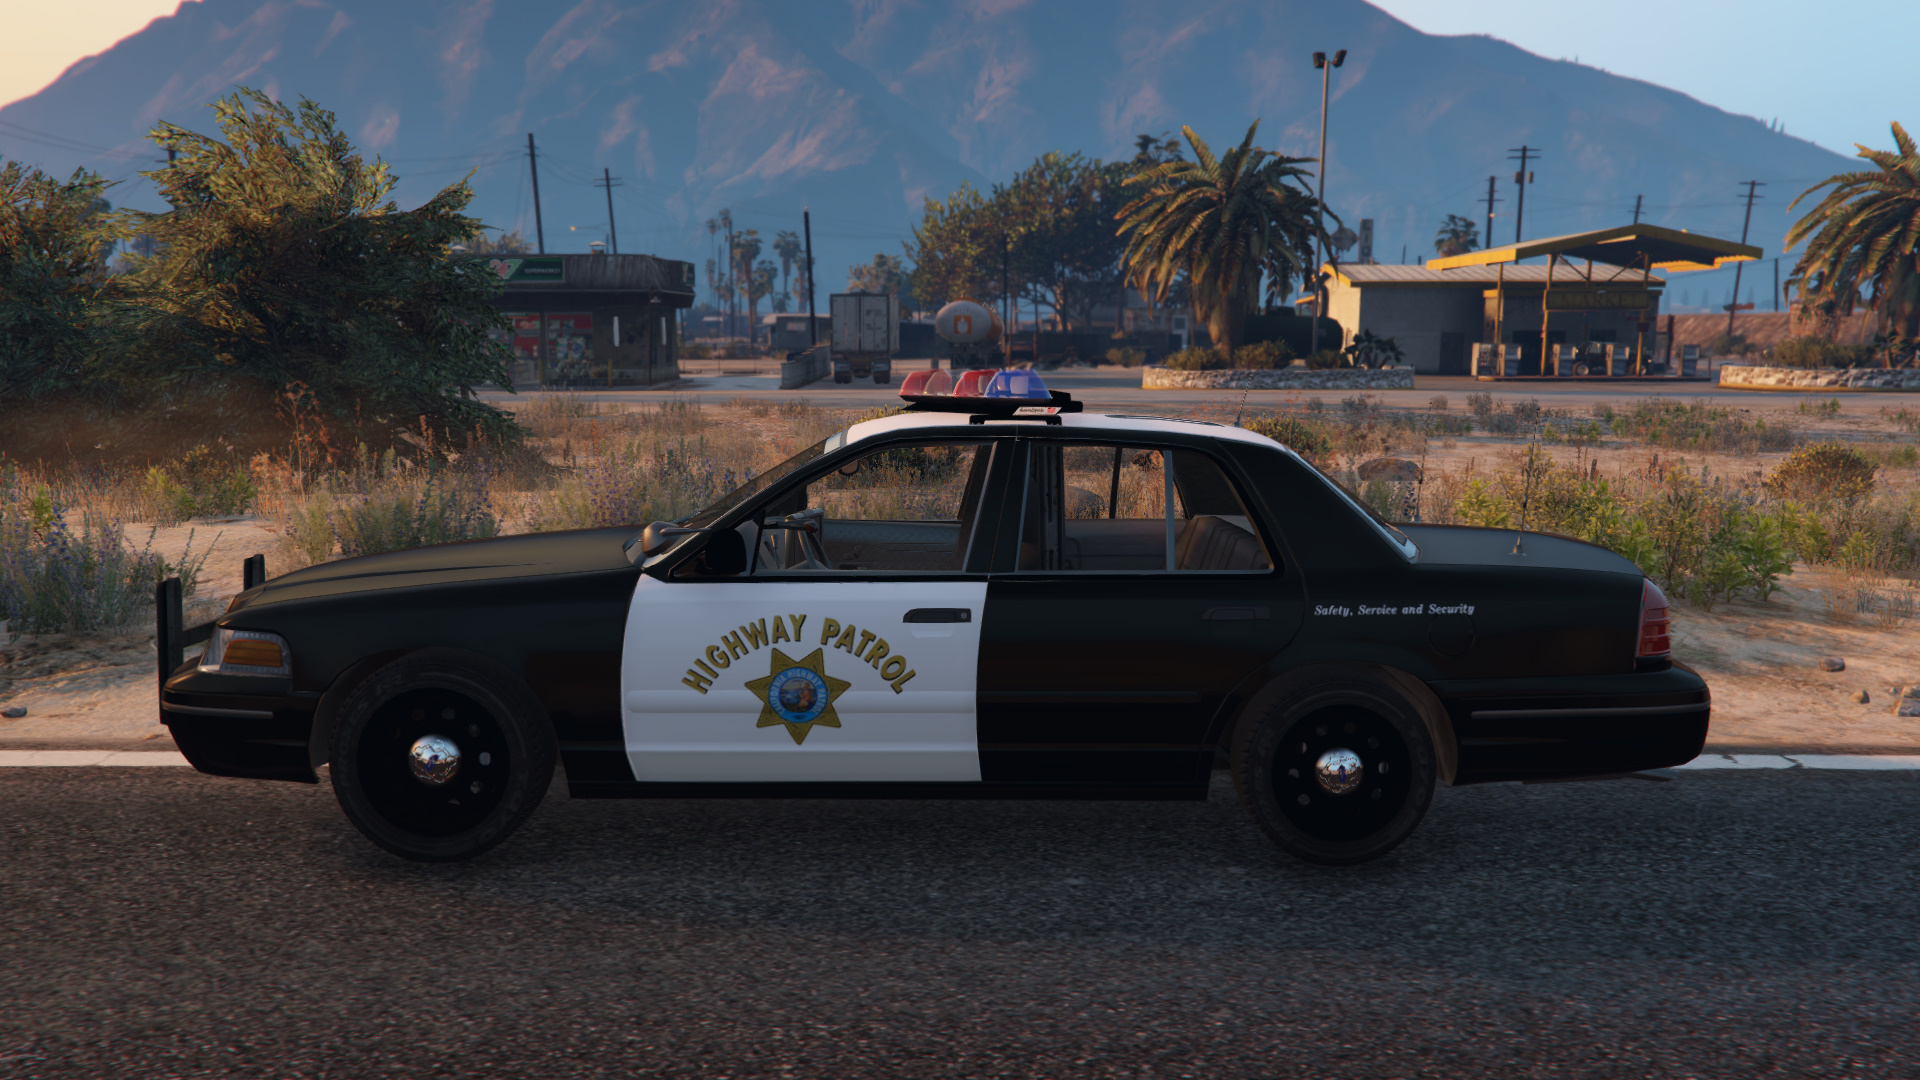 Chp cvpi with fs vector lightbar gta5 mods 0b066c gta5 2015 09 13 10 22 05 115 aloadofball Gallery